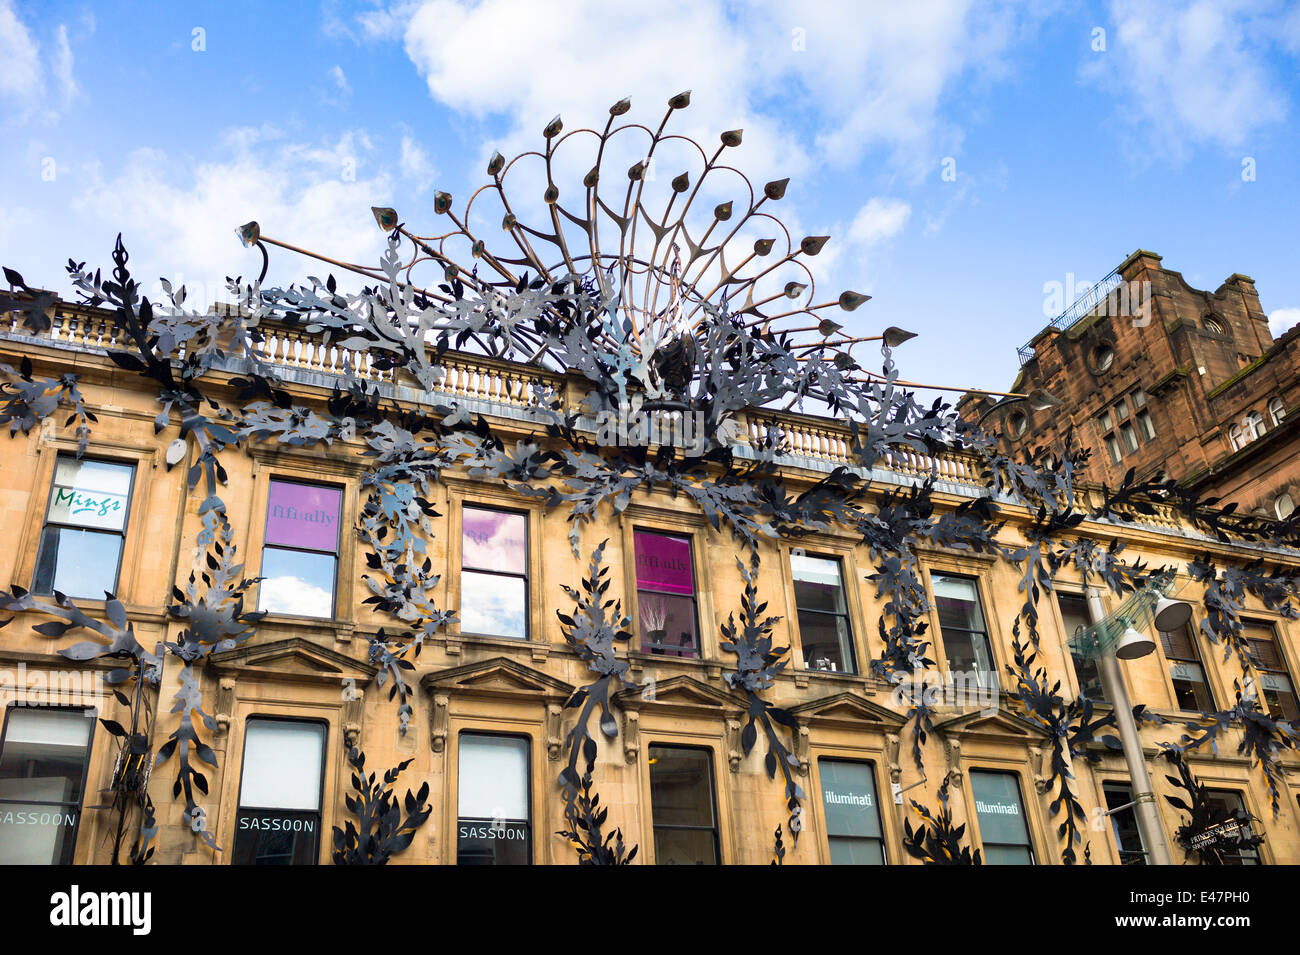 Famous peacock modern art sculpture above Prince's Square Shopping Centre in Buchanan Street, Glasgow City Centre, - Stock Image